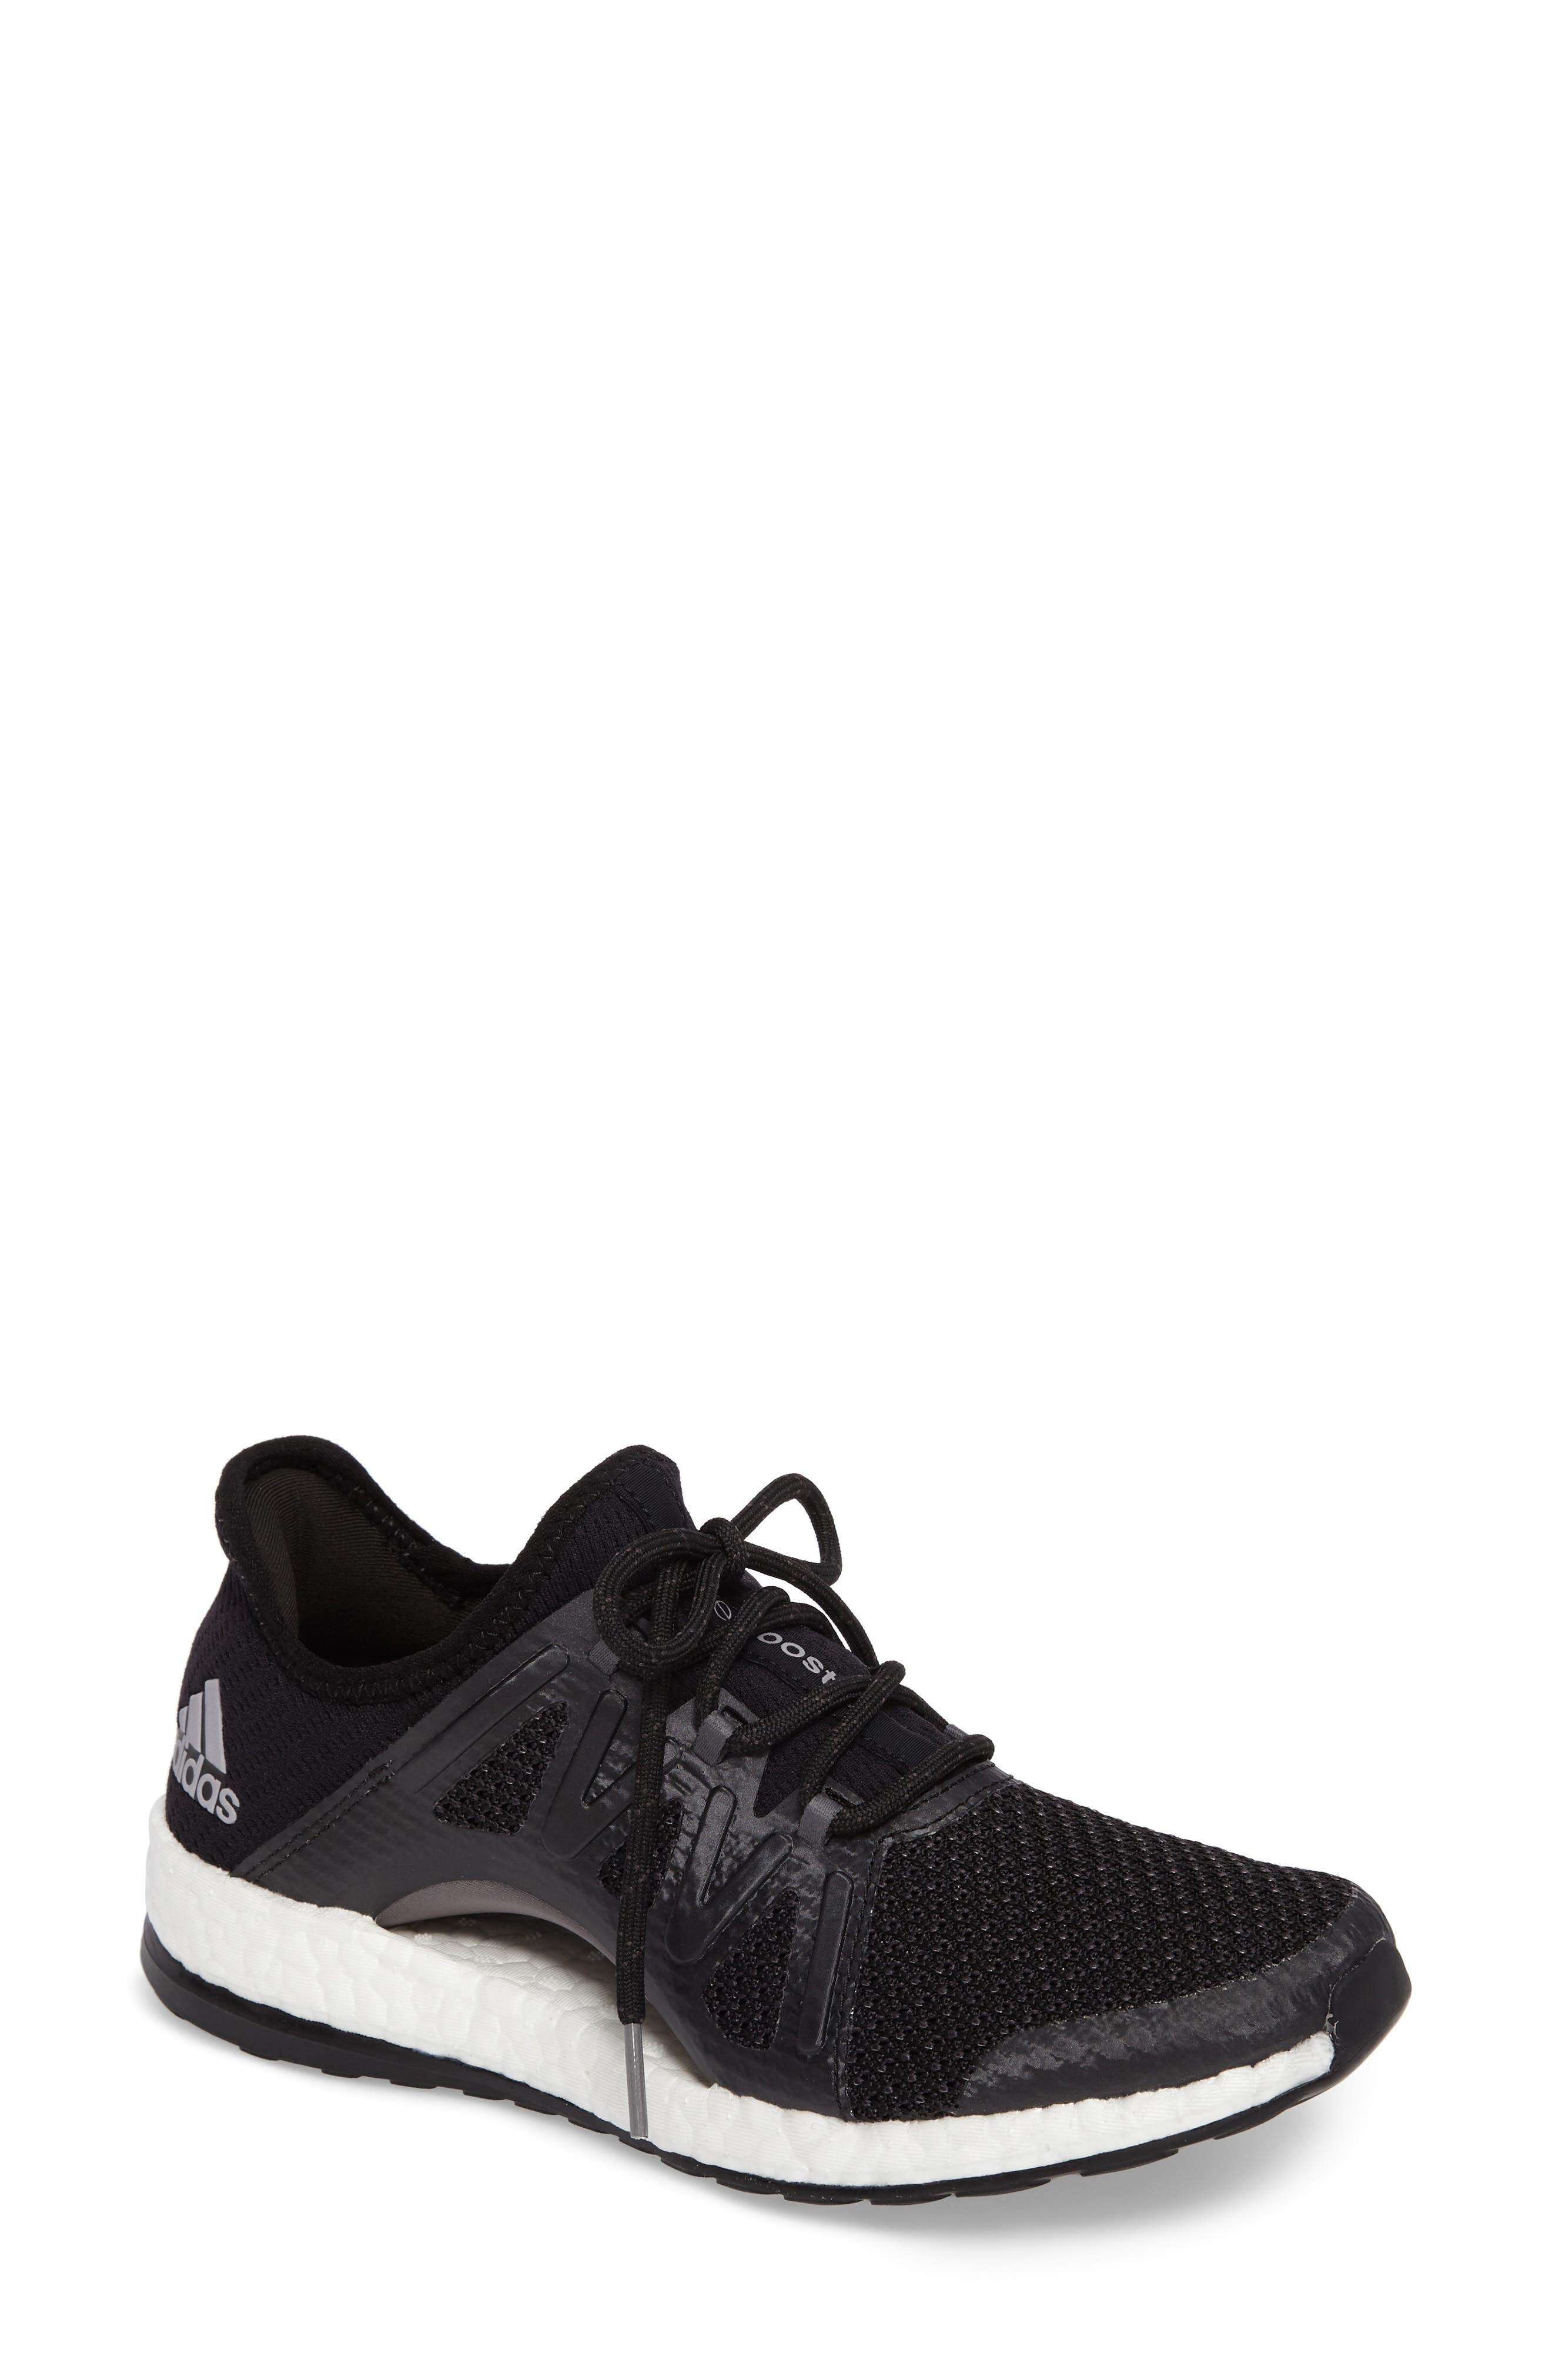 PureBOOST Xpose Running Shoe,                         Main,                         color,